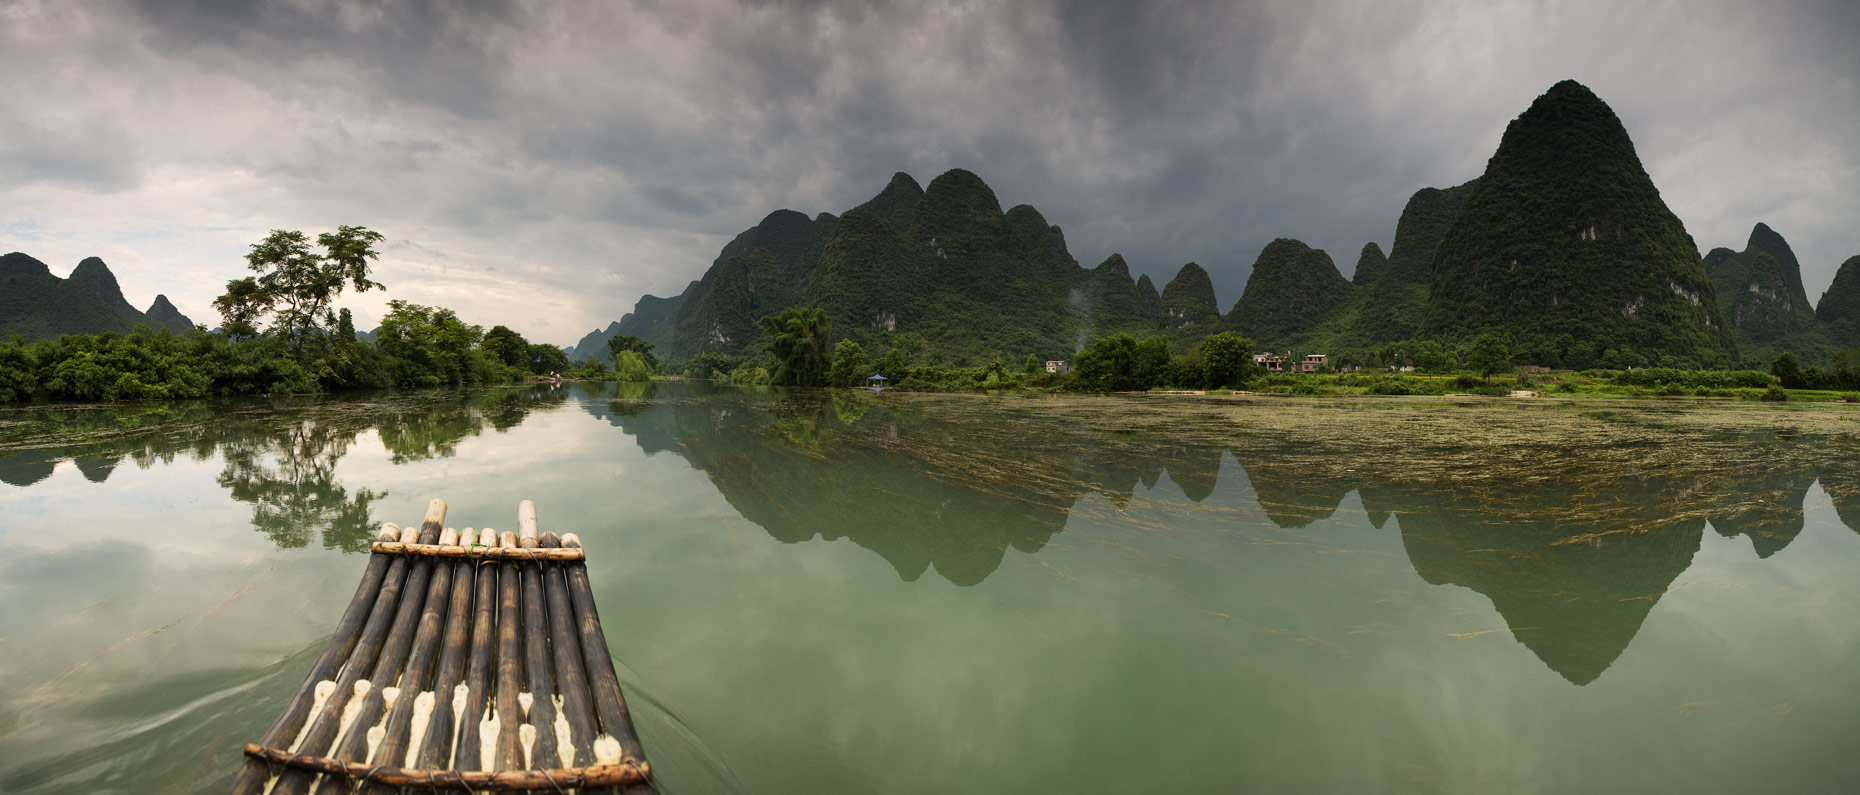 Bamboo Ride - Yulong River